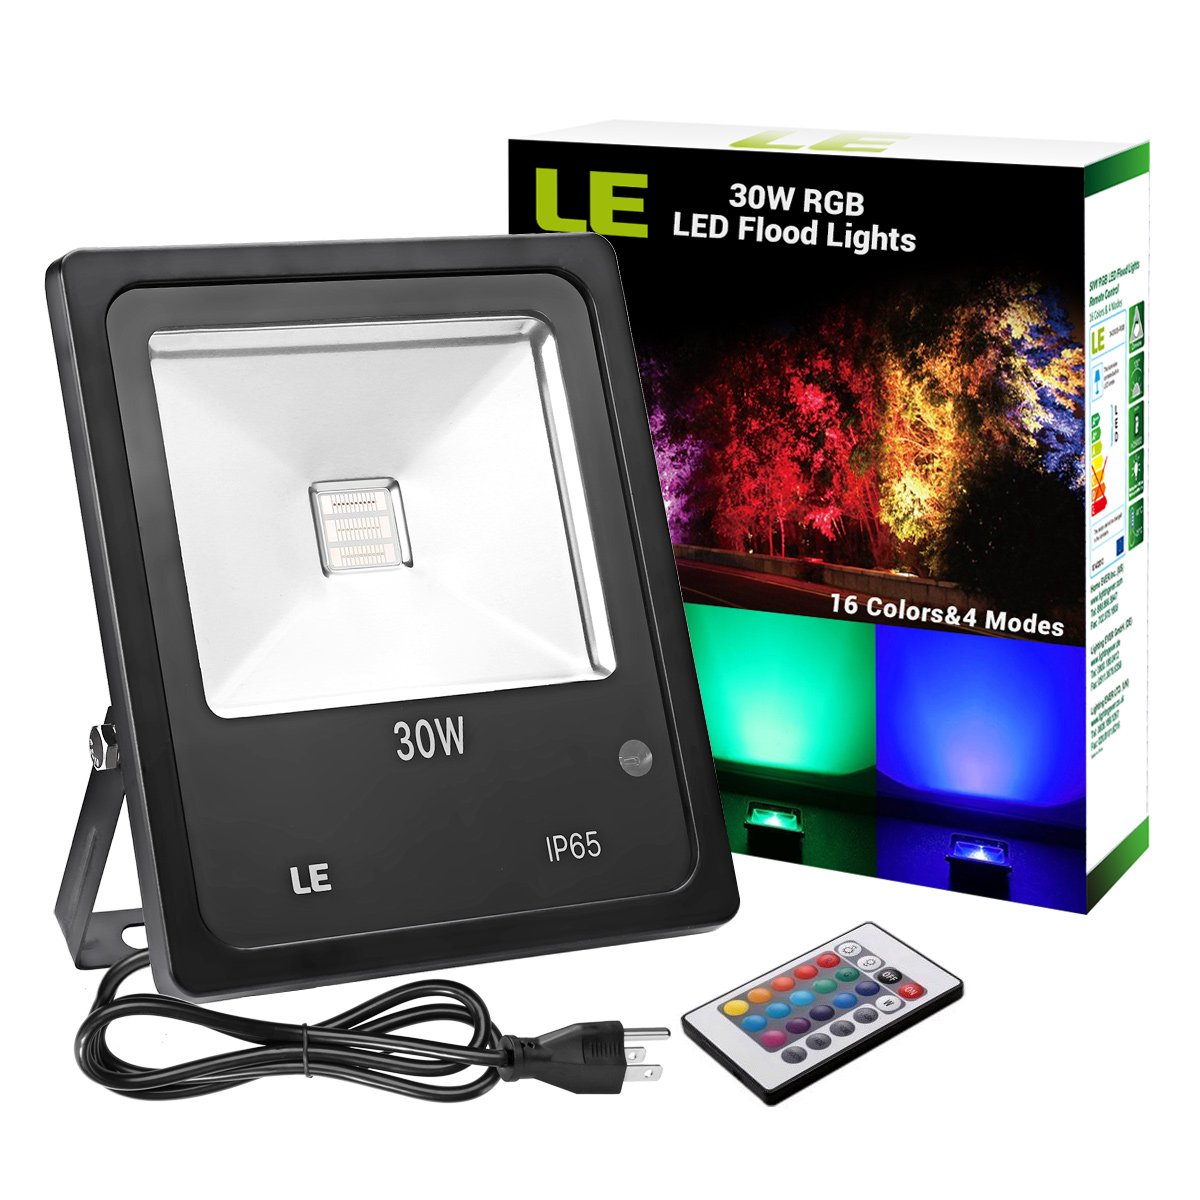 le remote control 30w outdoor rgb led flood lights dimmable 16